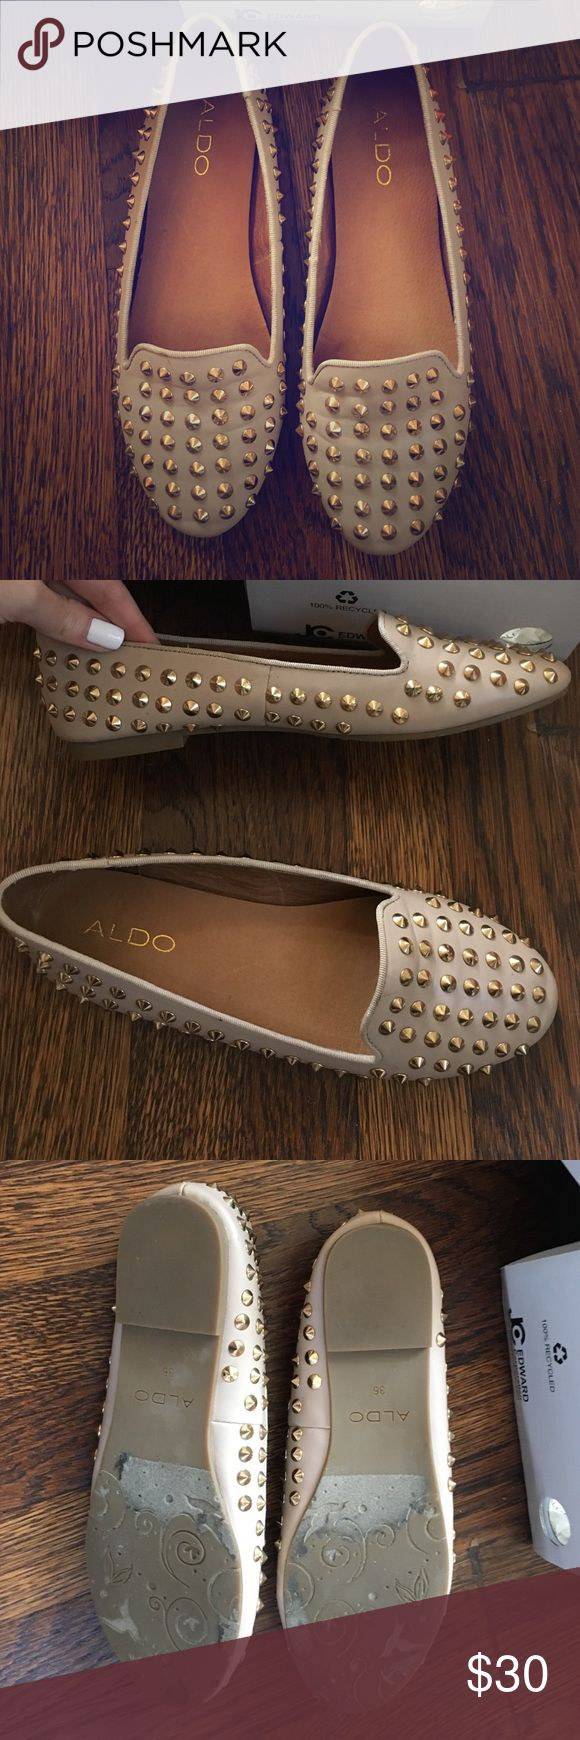 Aldo size 6 studded flats Only worn a few times. Great condition and very comfortable, I just have too many shoes! ALDO Shoes Flats & Loafers